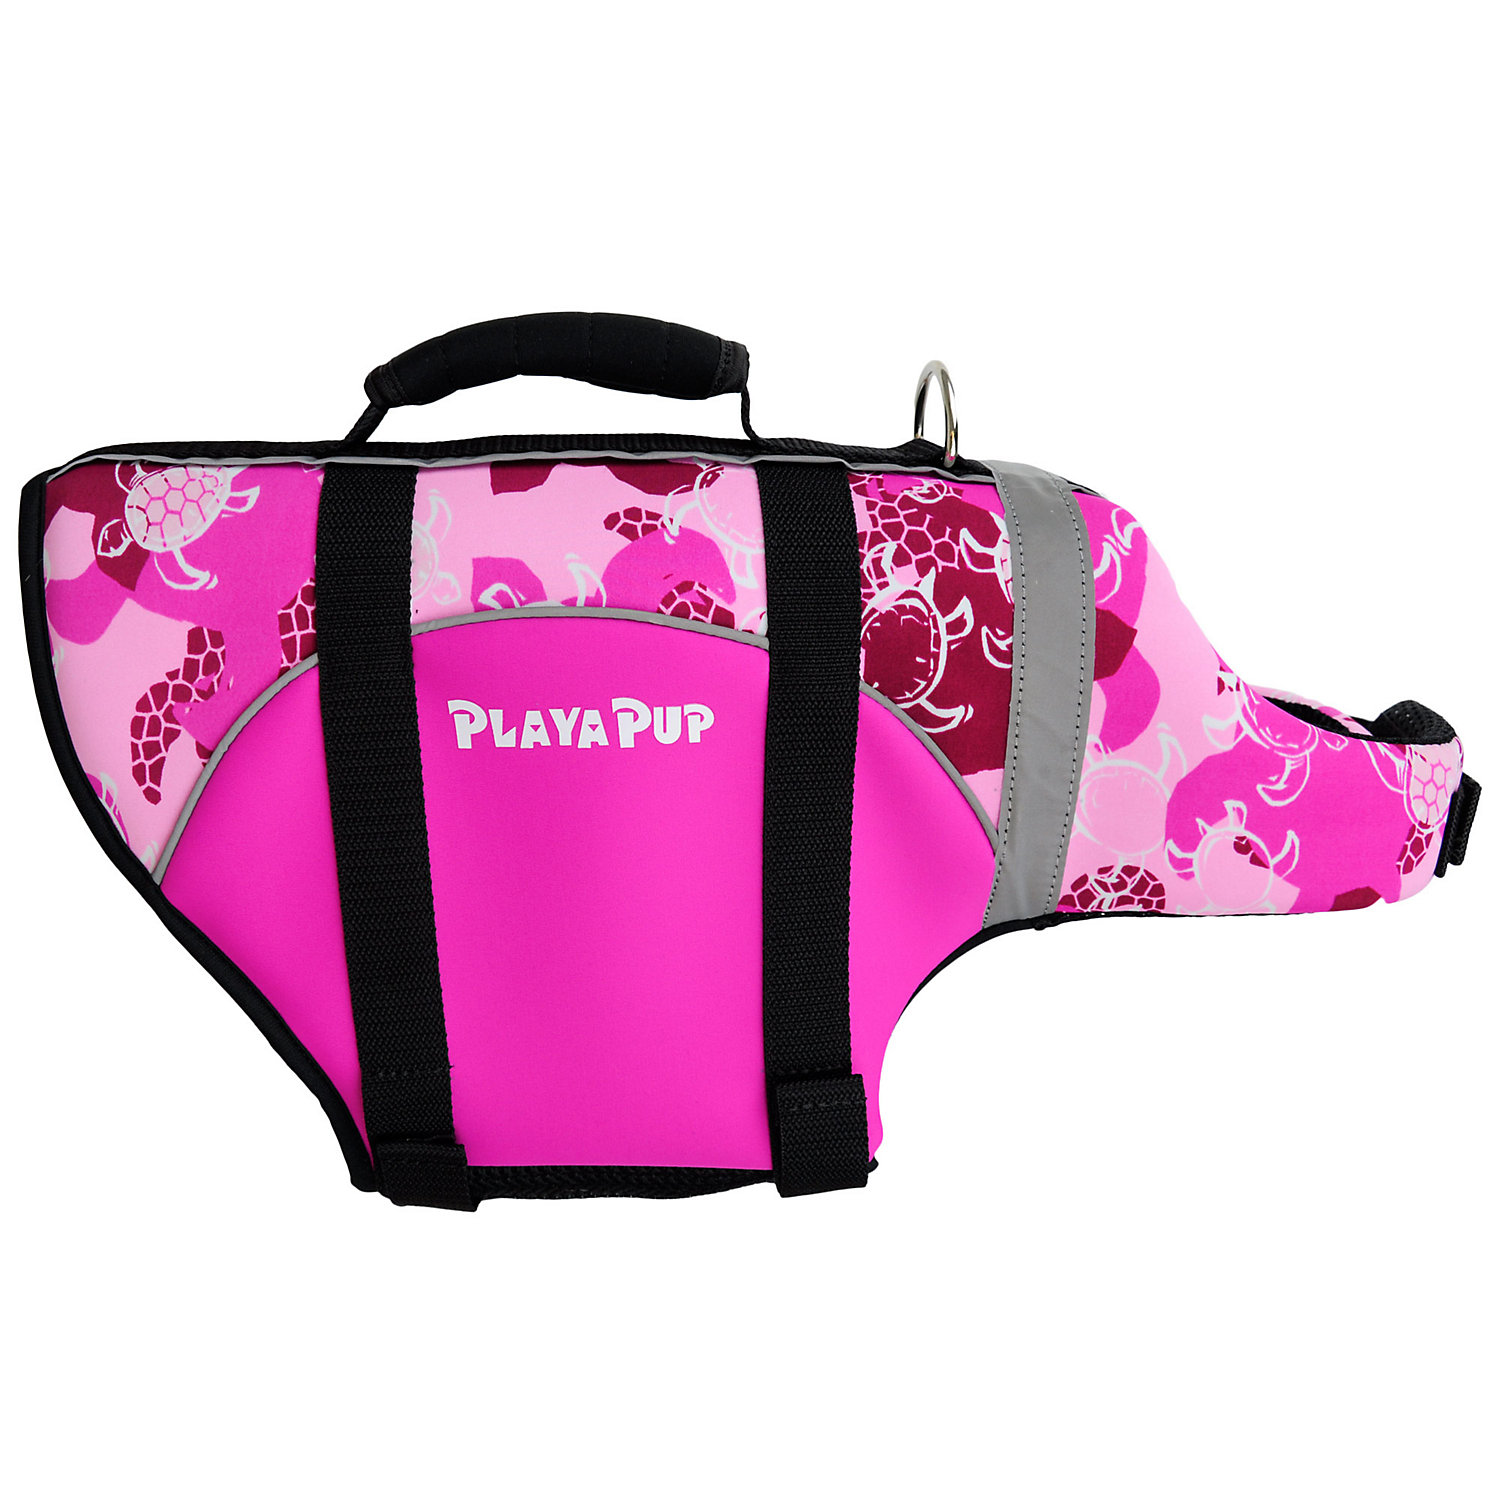 Image of Playa Pup Pink Dog Flotation Vest, Medium